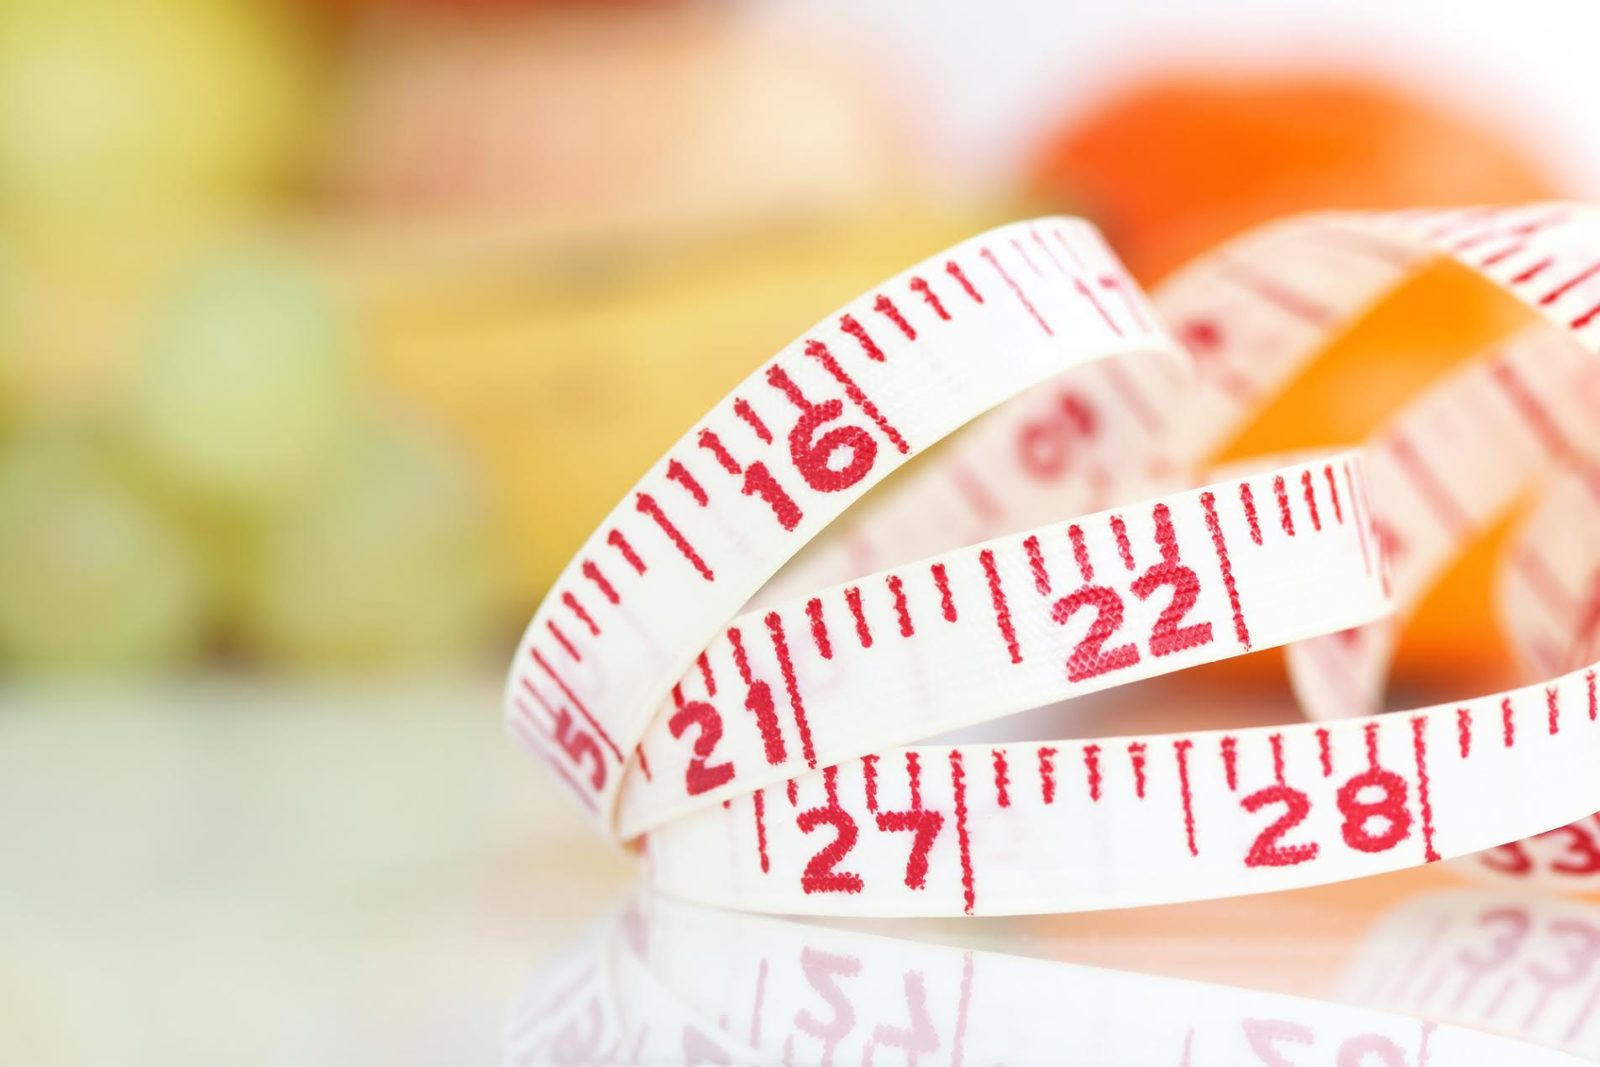 Pic- Weight Loss